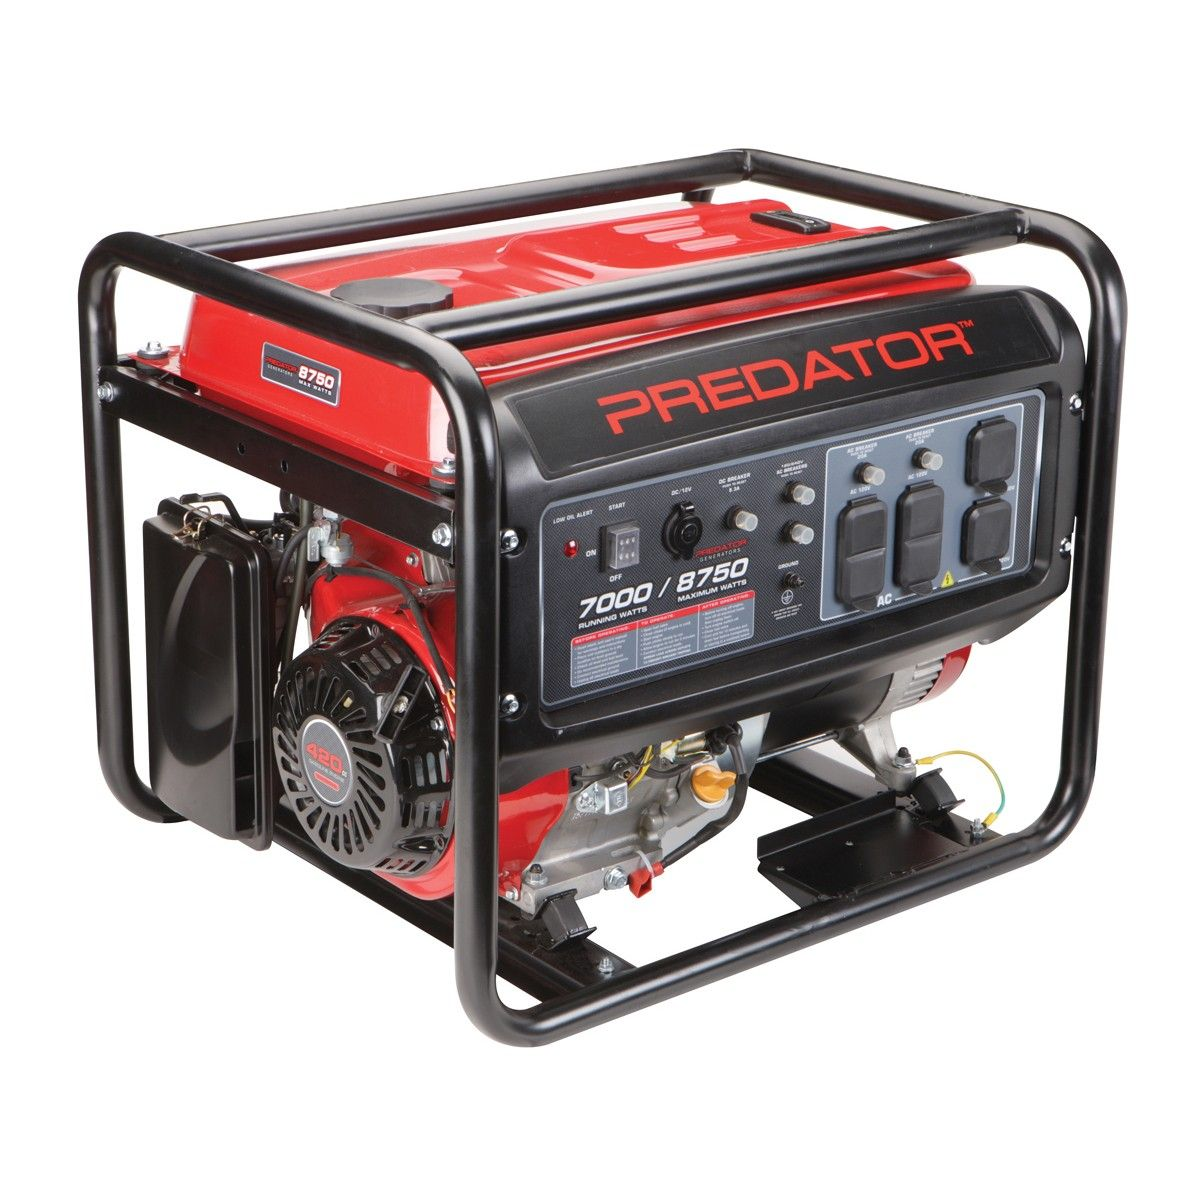 420cc 8750 Watts Max 7000 Watts Rated Portable Generator Certified For California Gas Generator Gas Powered Generator Power Generator